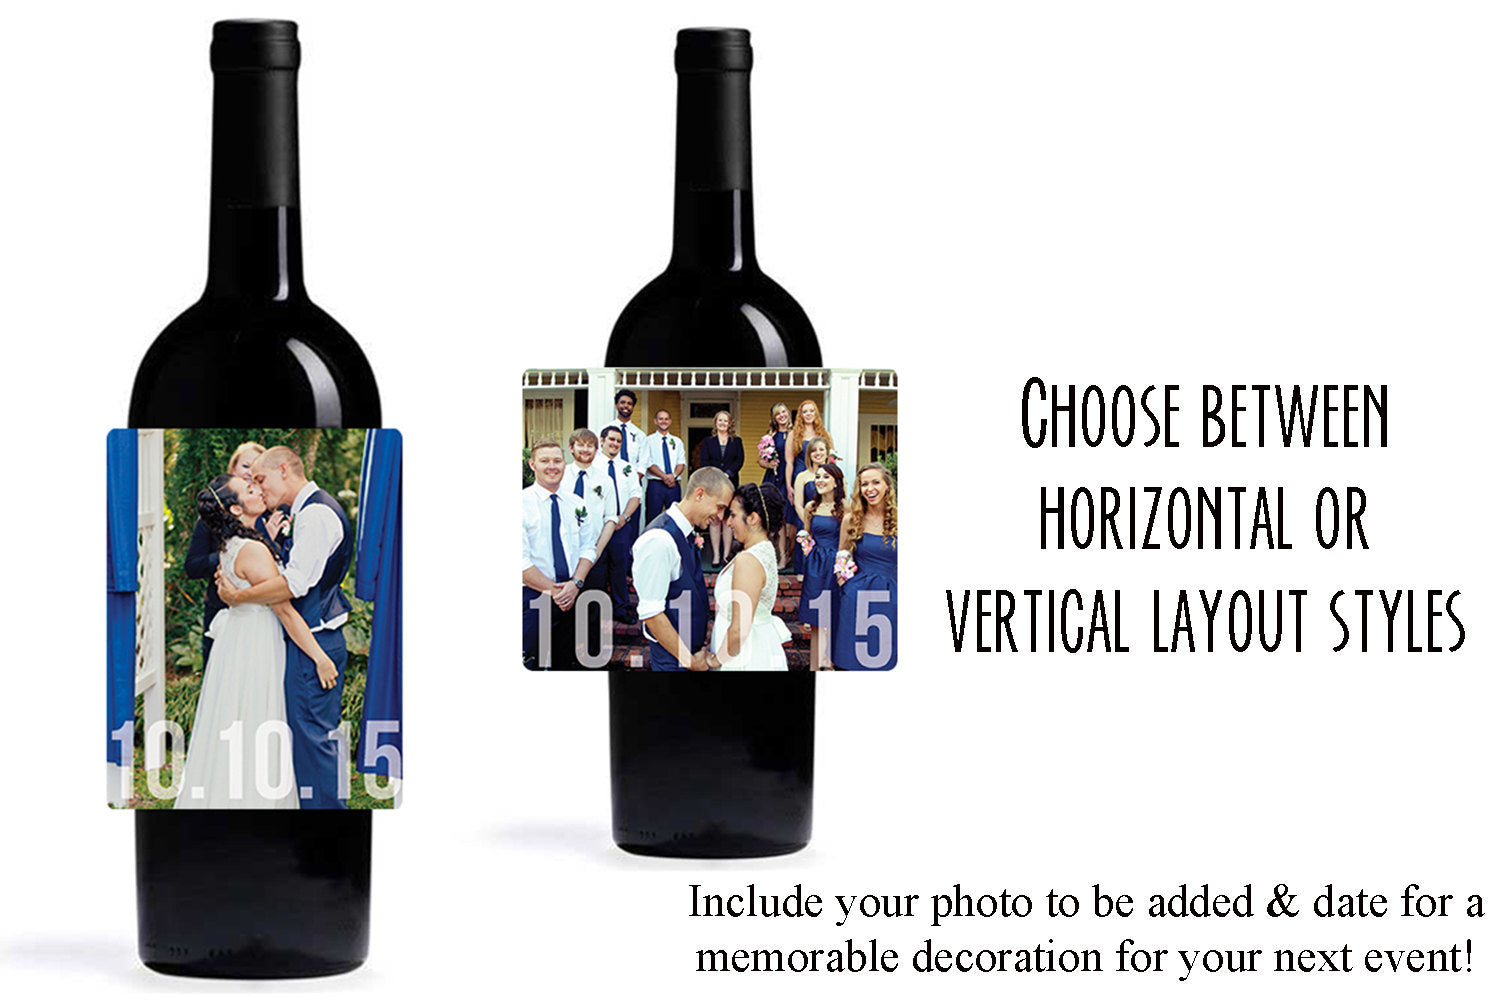 Custom Photography Wine Bottle Labels | Personalized Wine Bottle Labels - DesignsbyZal